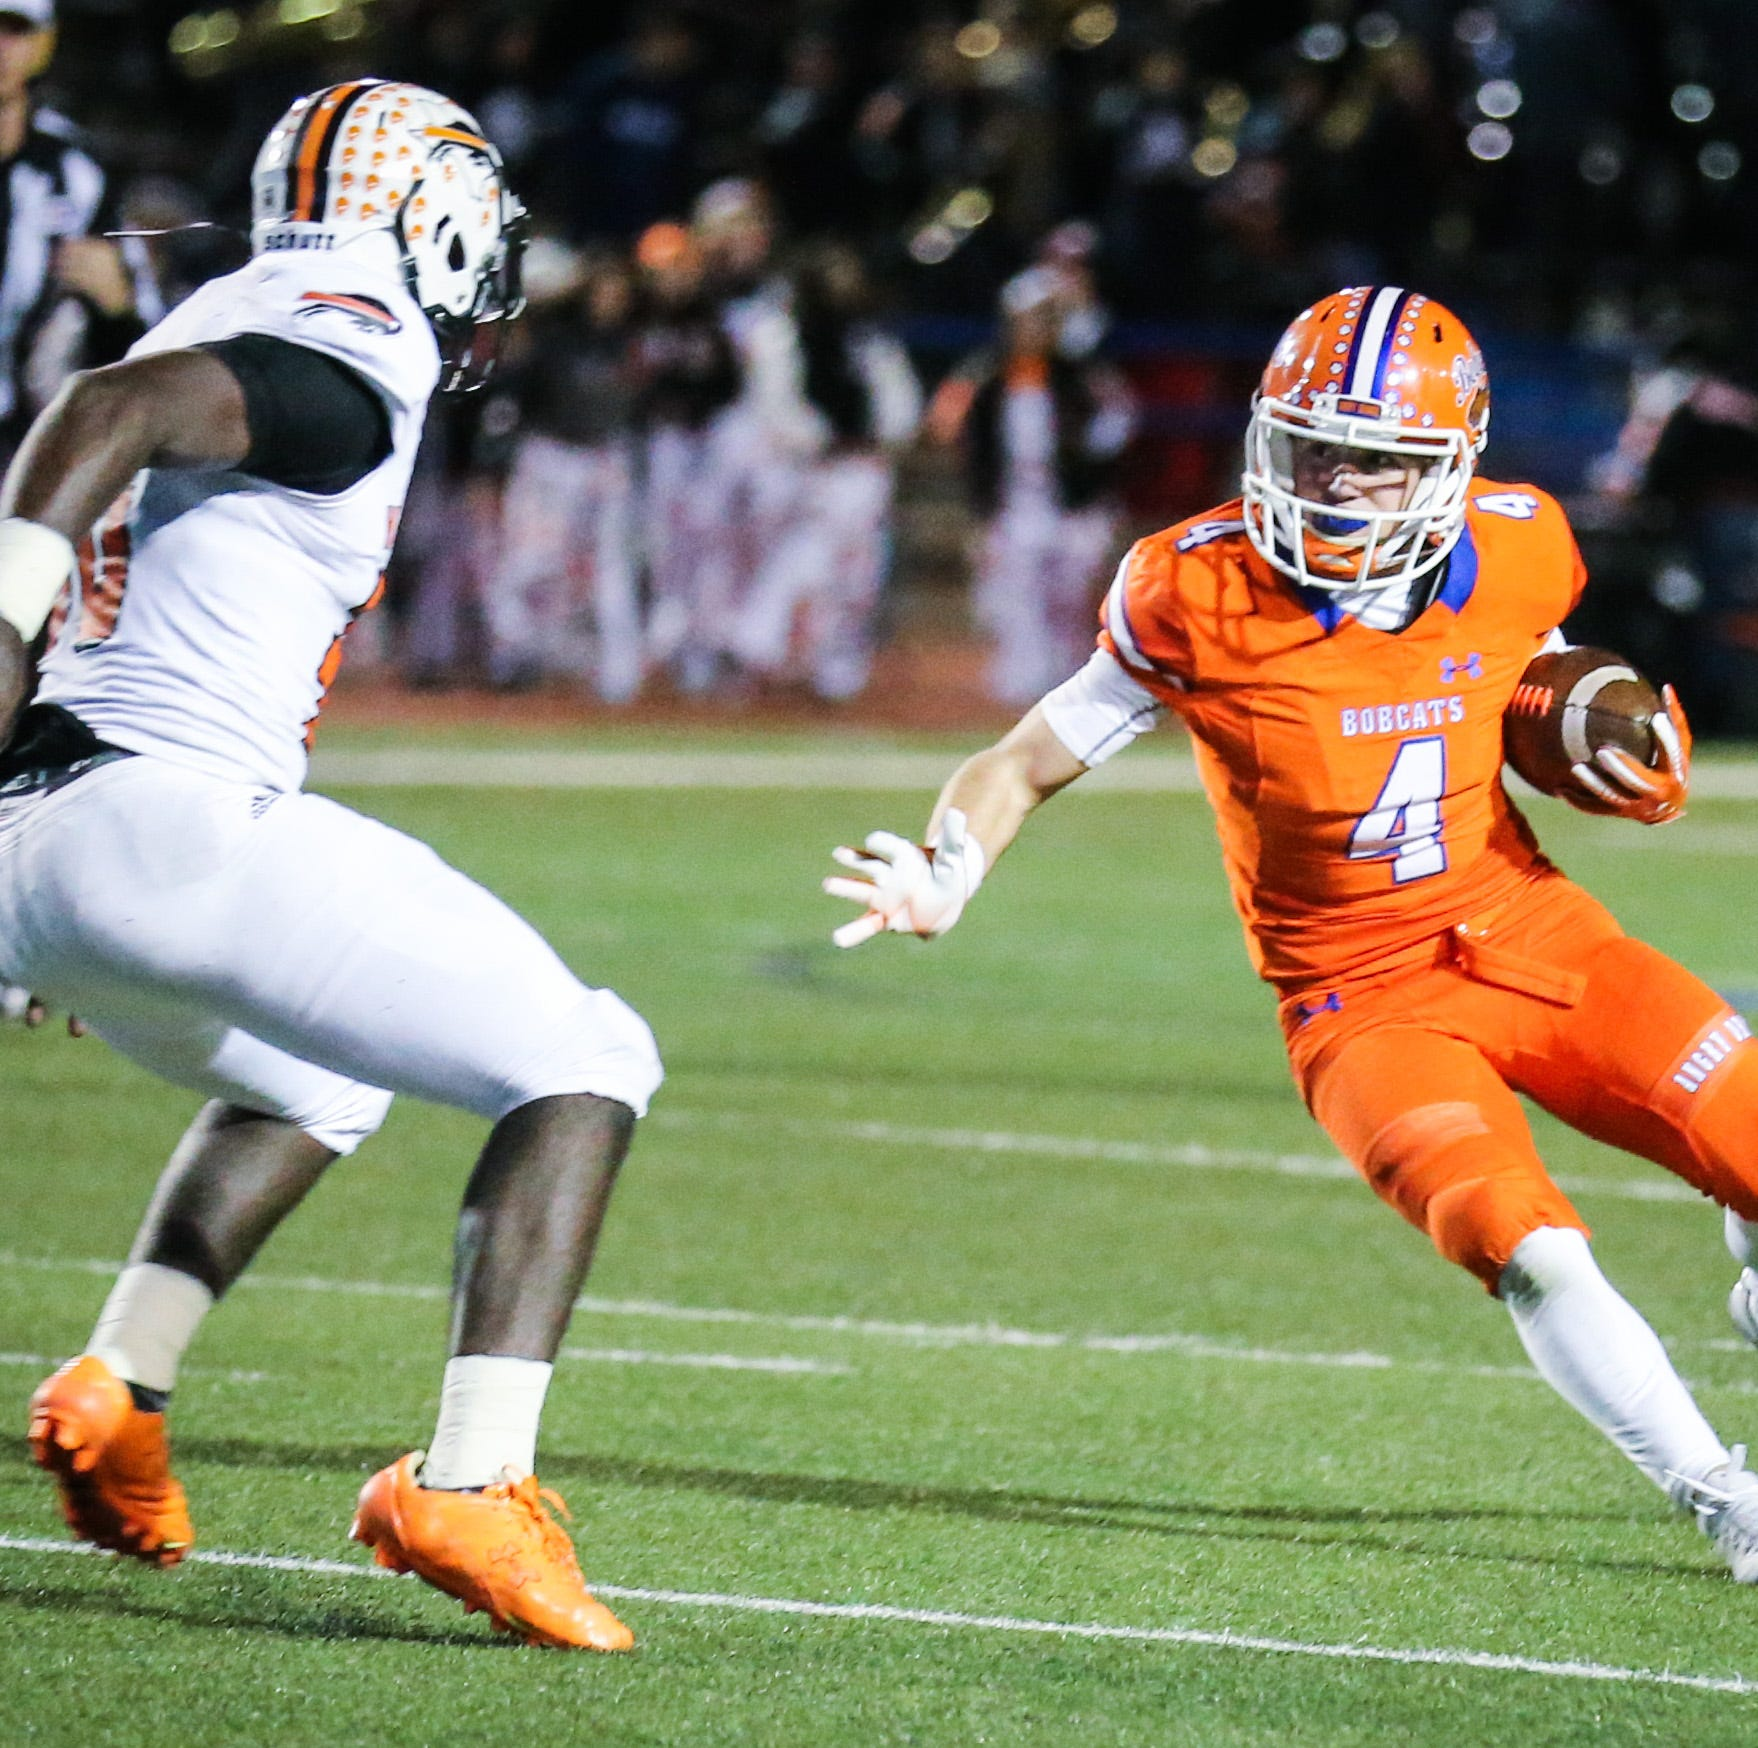 LIVE UPDATES: San Angelo Central vs. Arlington Lamar